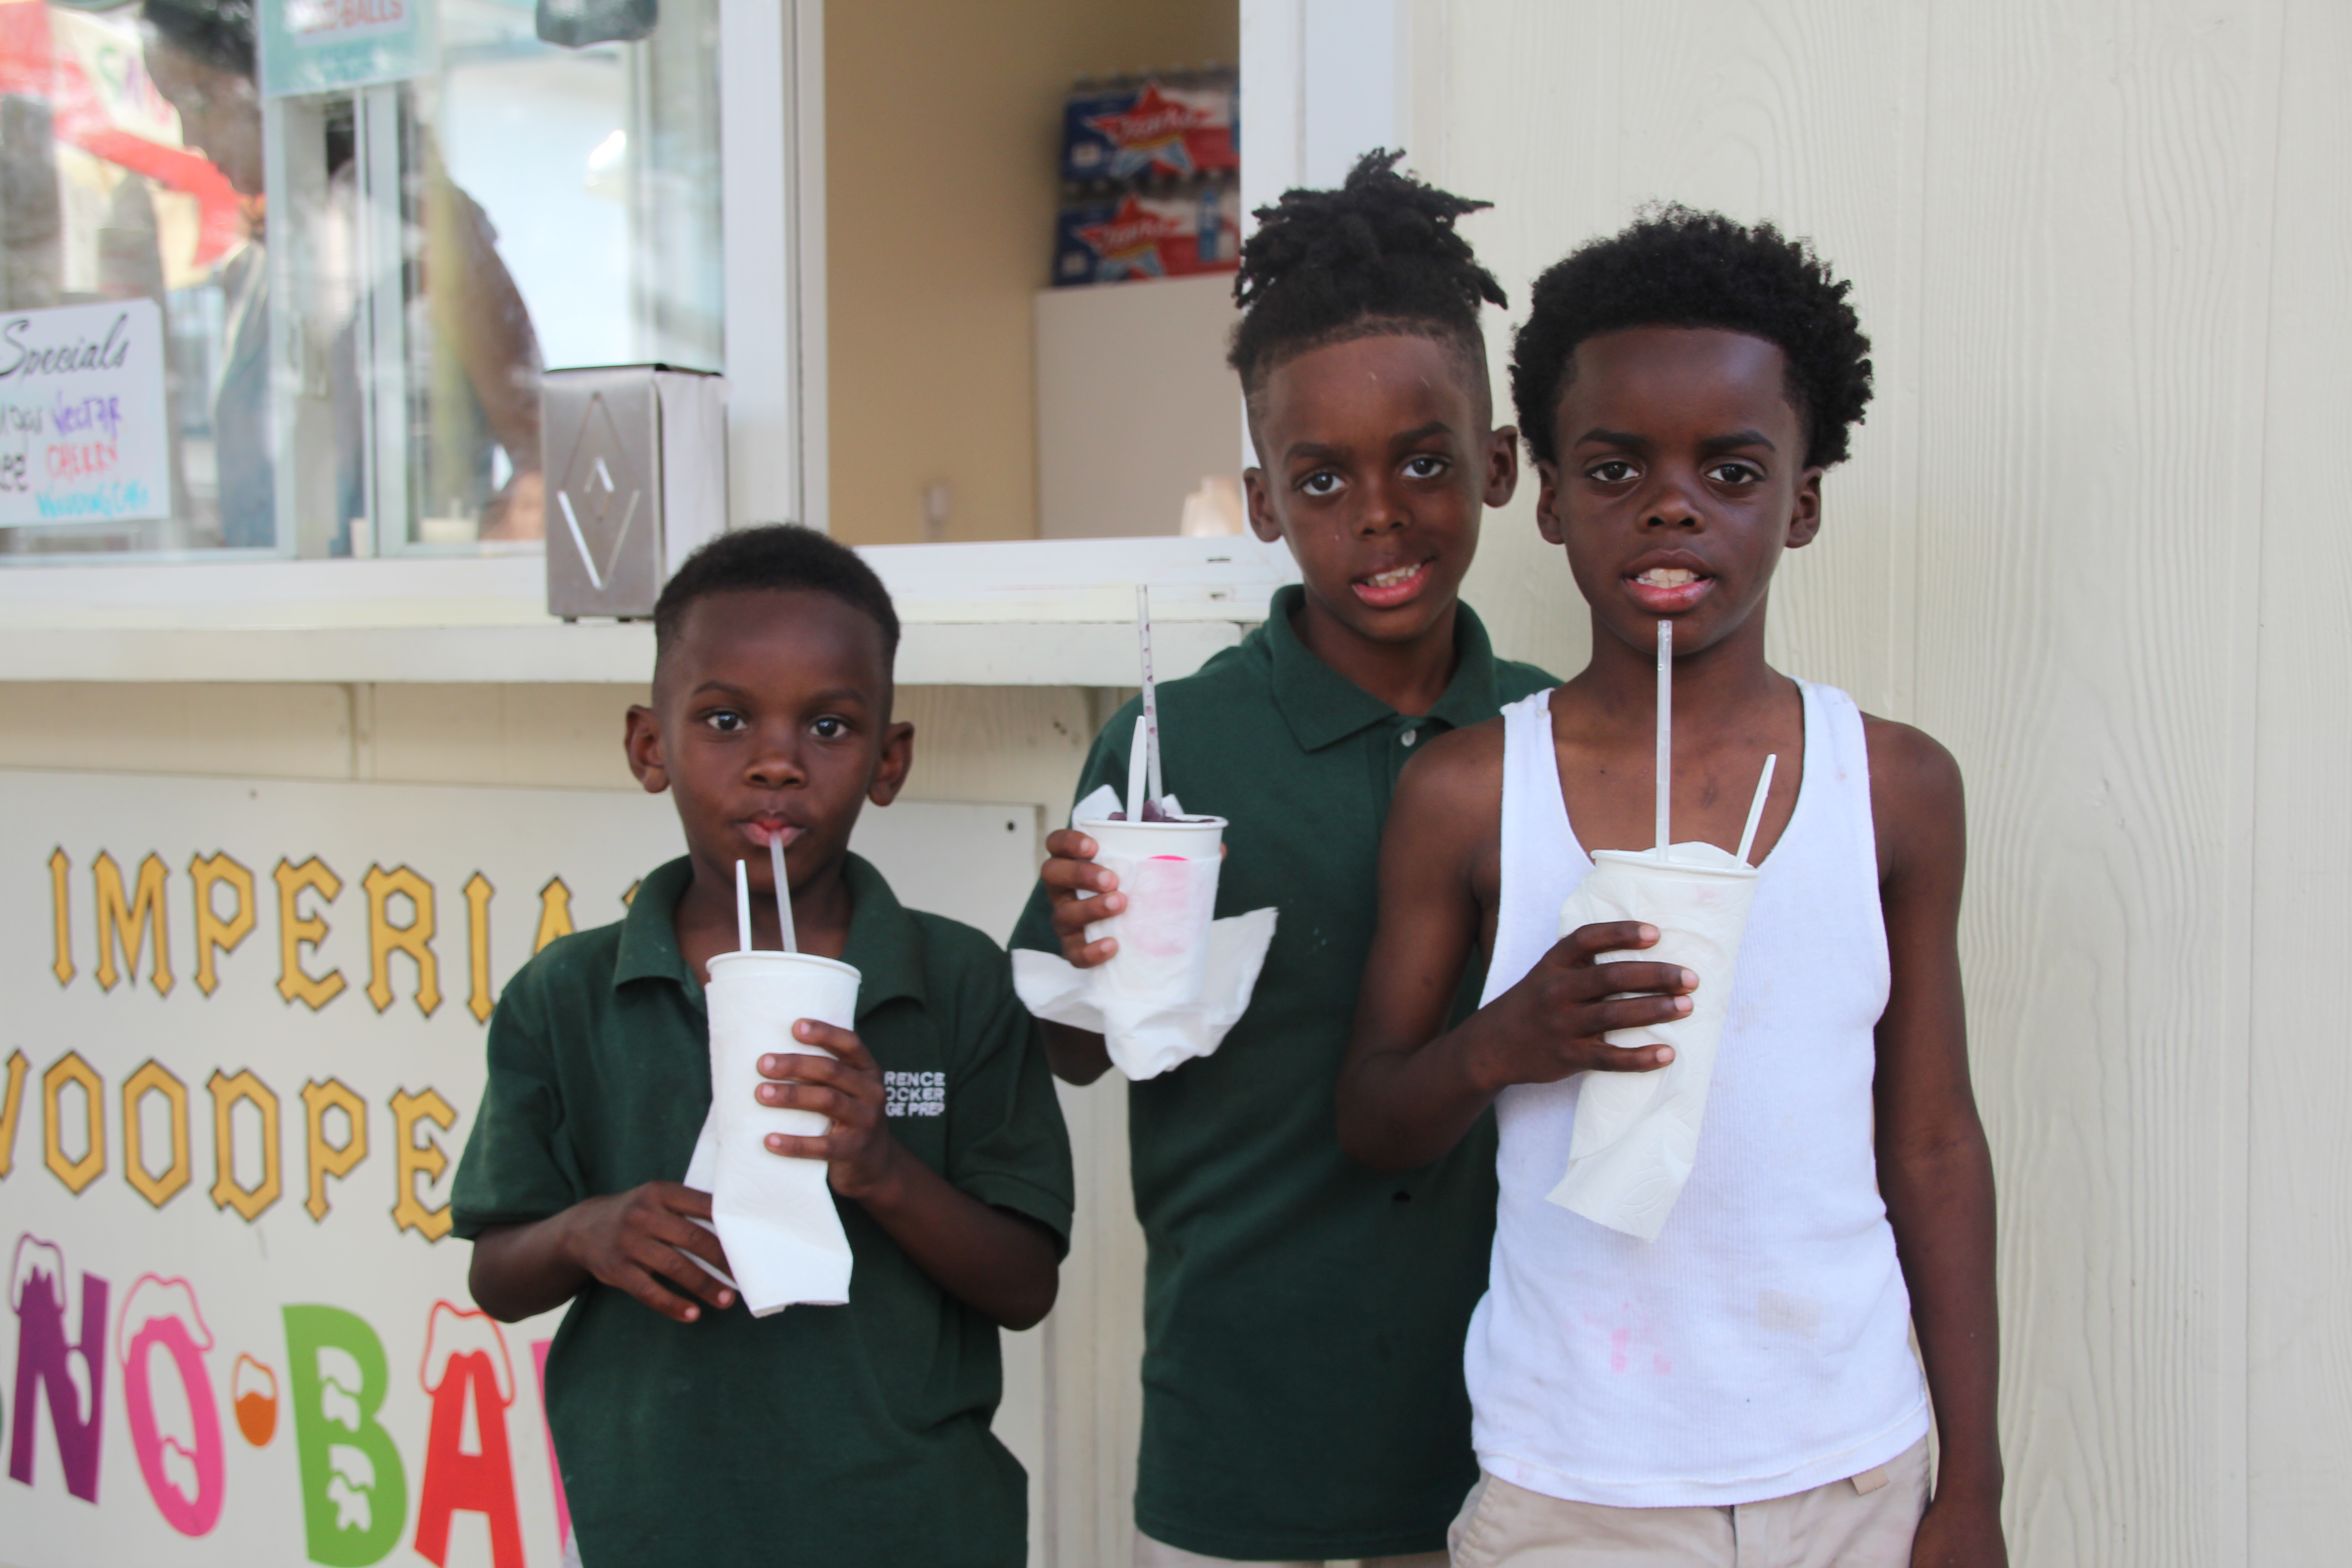 <em>Holy Snoballs!</em> The Search for the Best Snoball in New Orleans